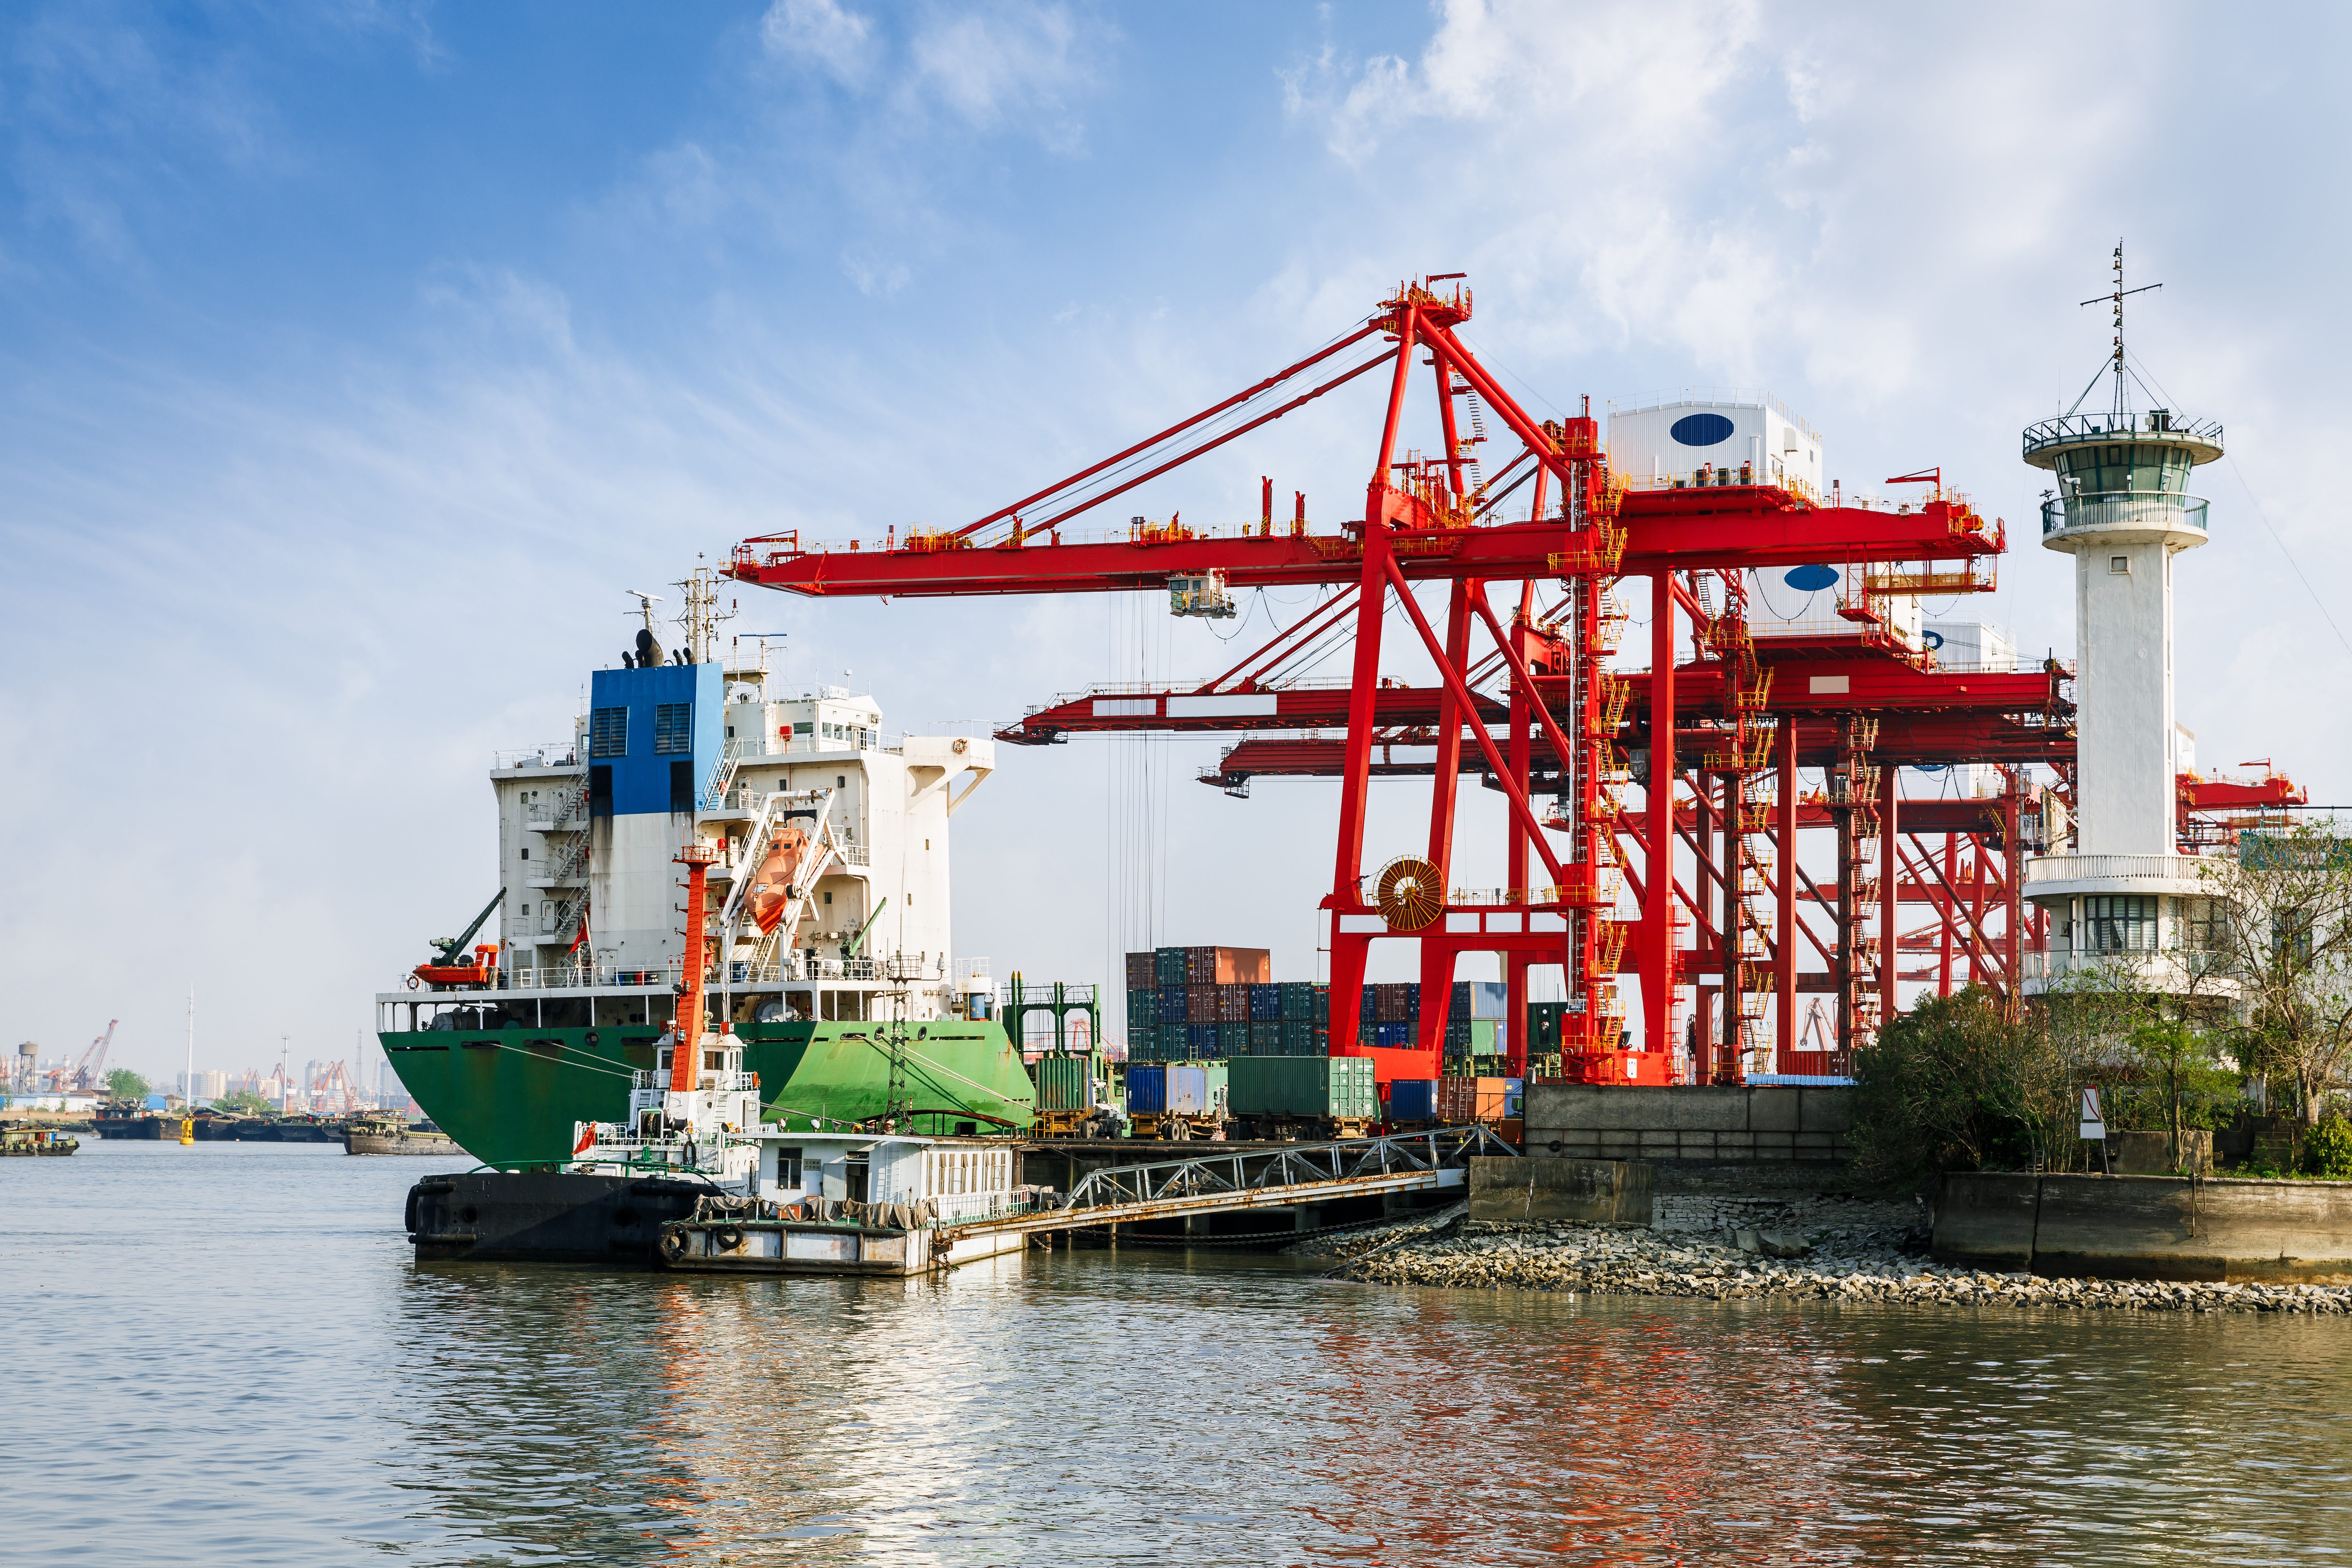 Industrial container freight Trade Port scene